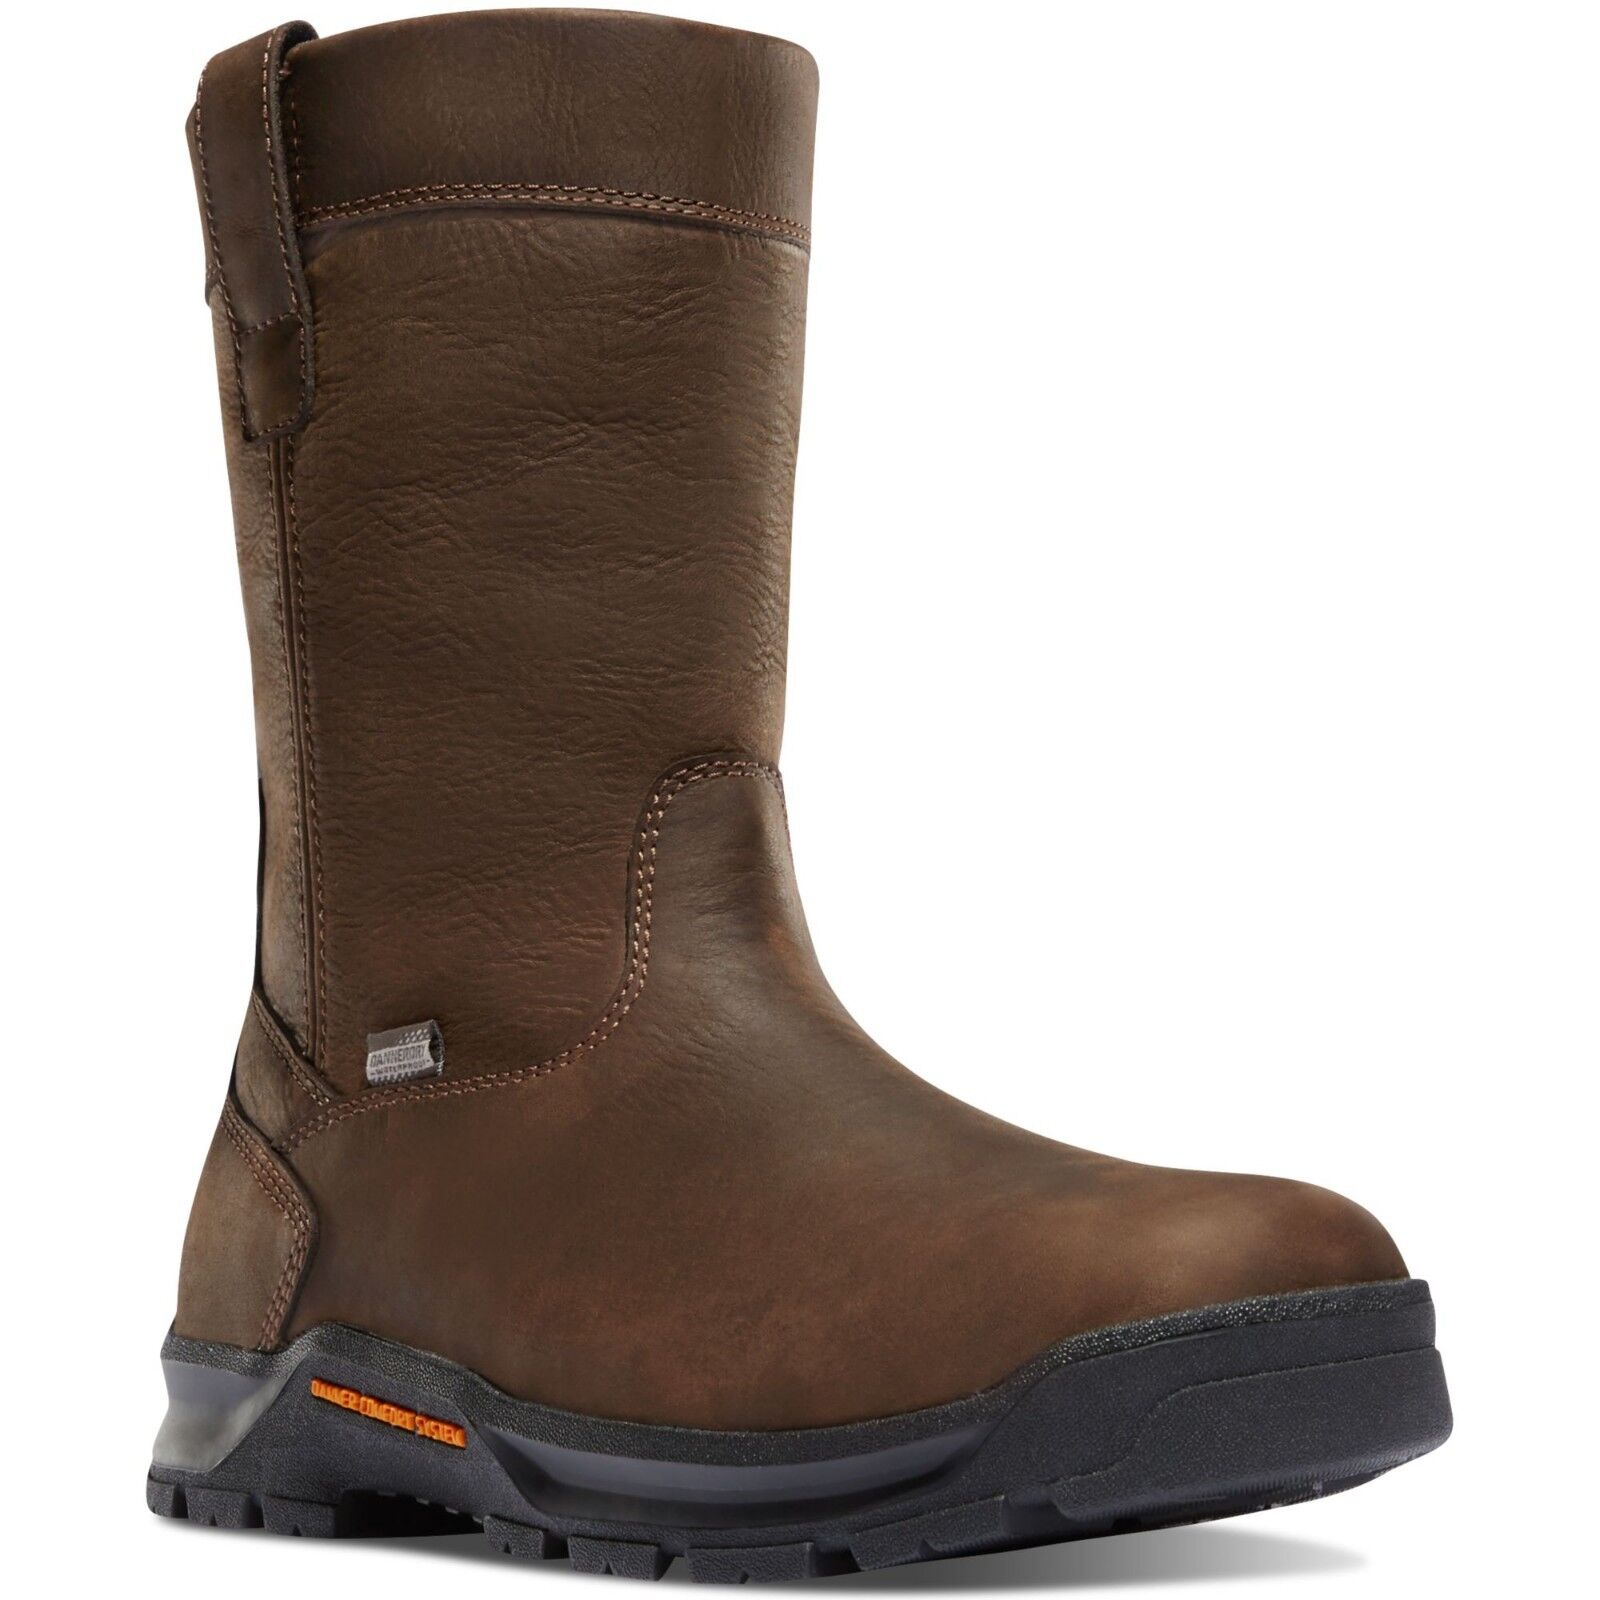 Danner Men's 12455 Crafter Wellington 11  Brown Comp Toe Work EH Safety Boots